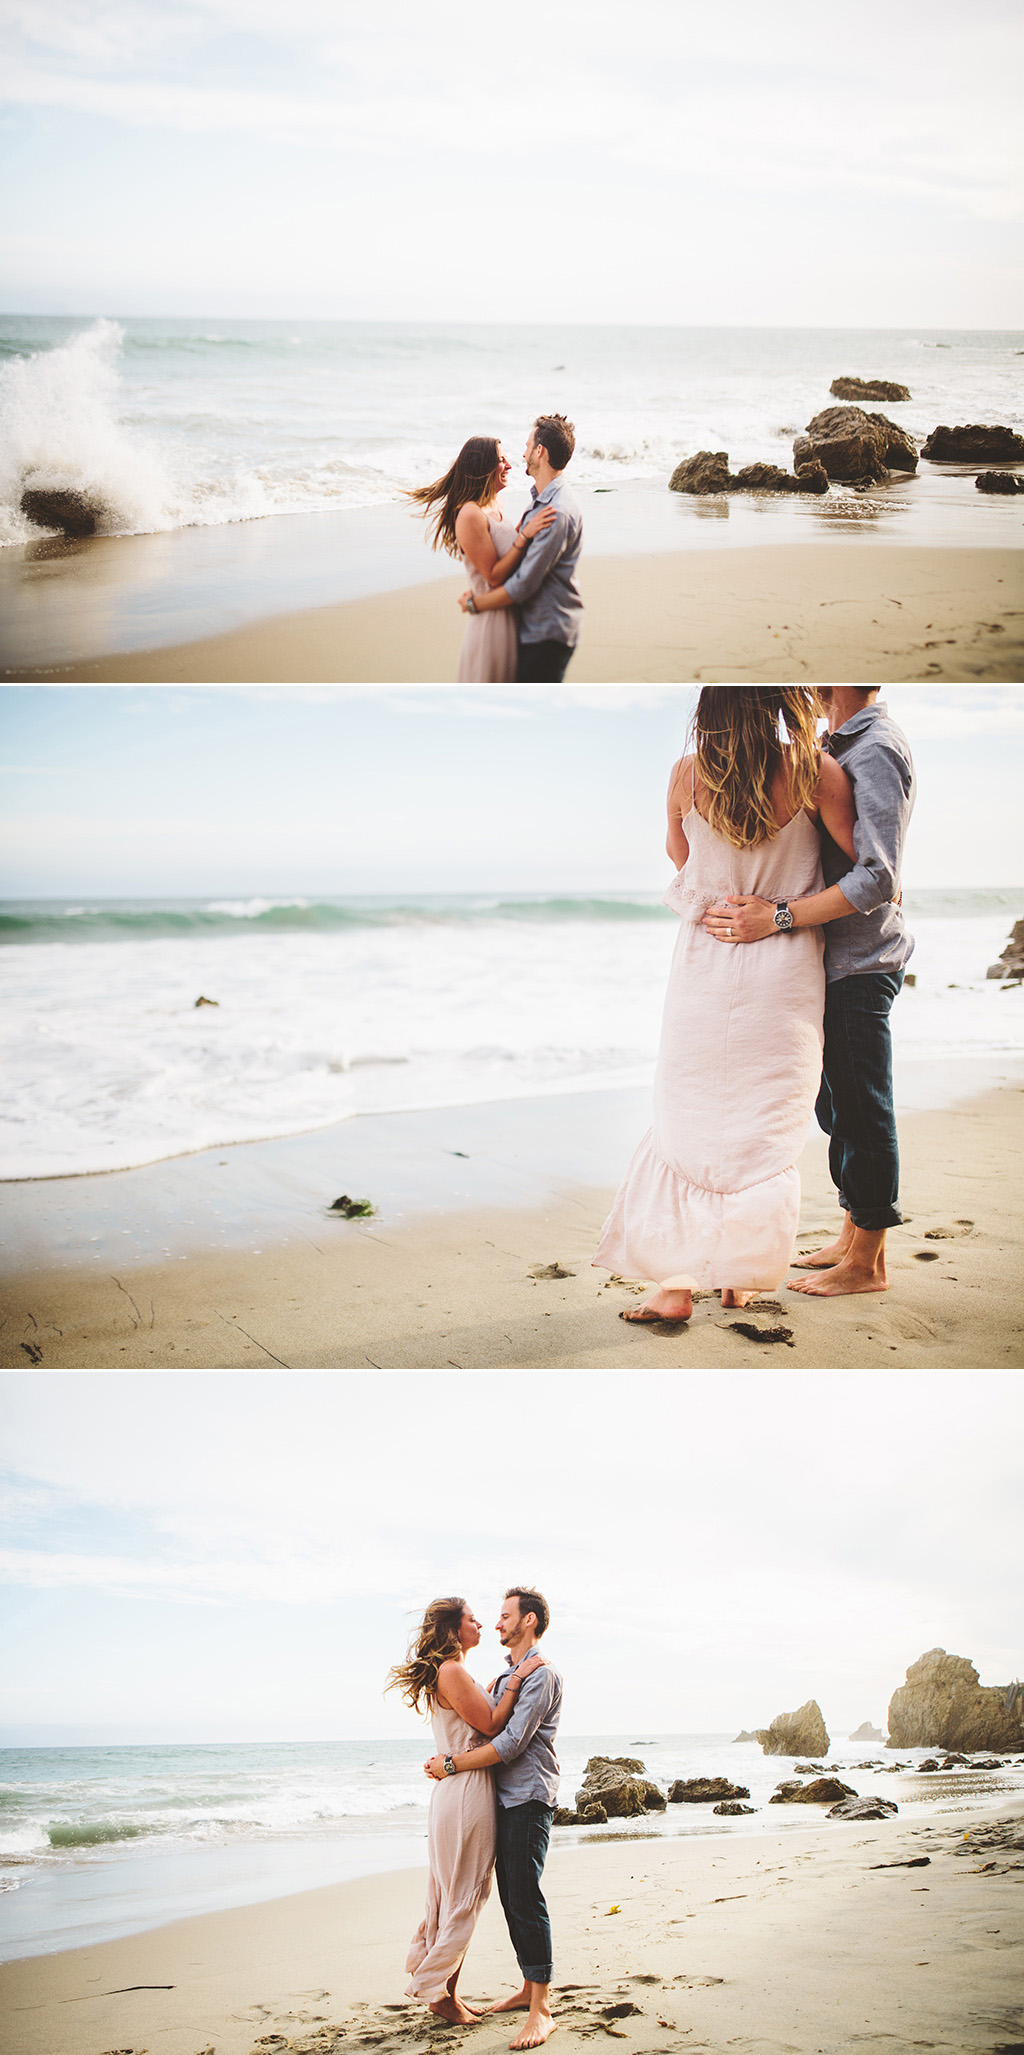 Los Angeles Wedding Photographs, Malibu beach engagement photographs